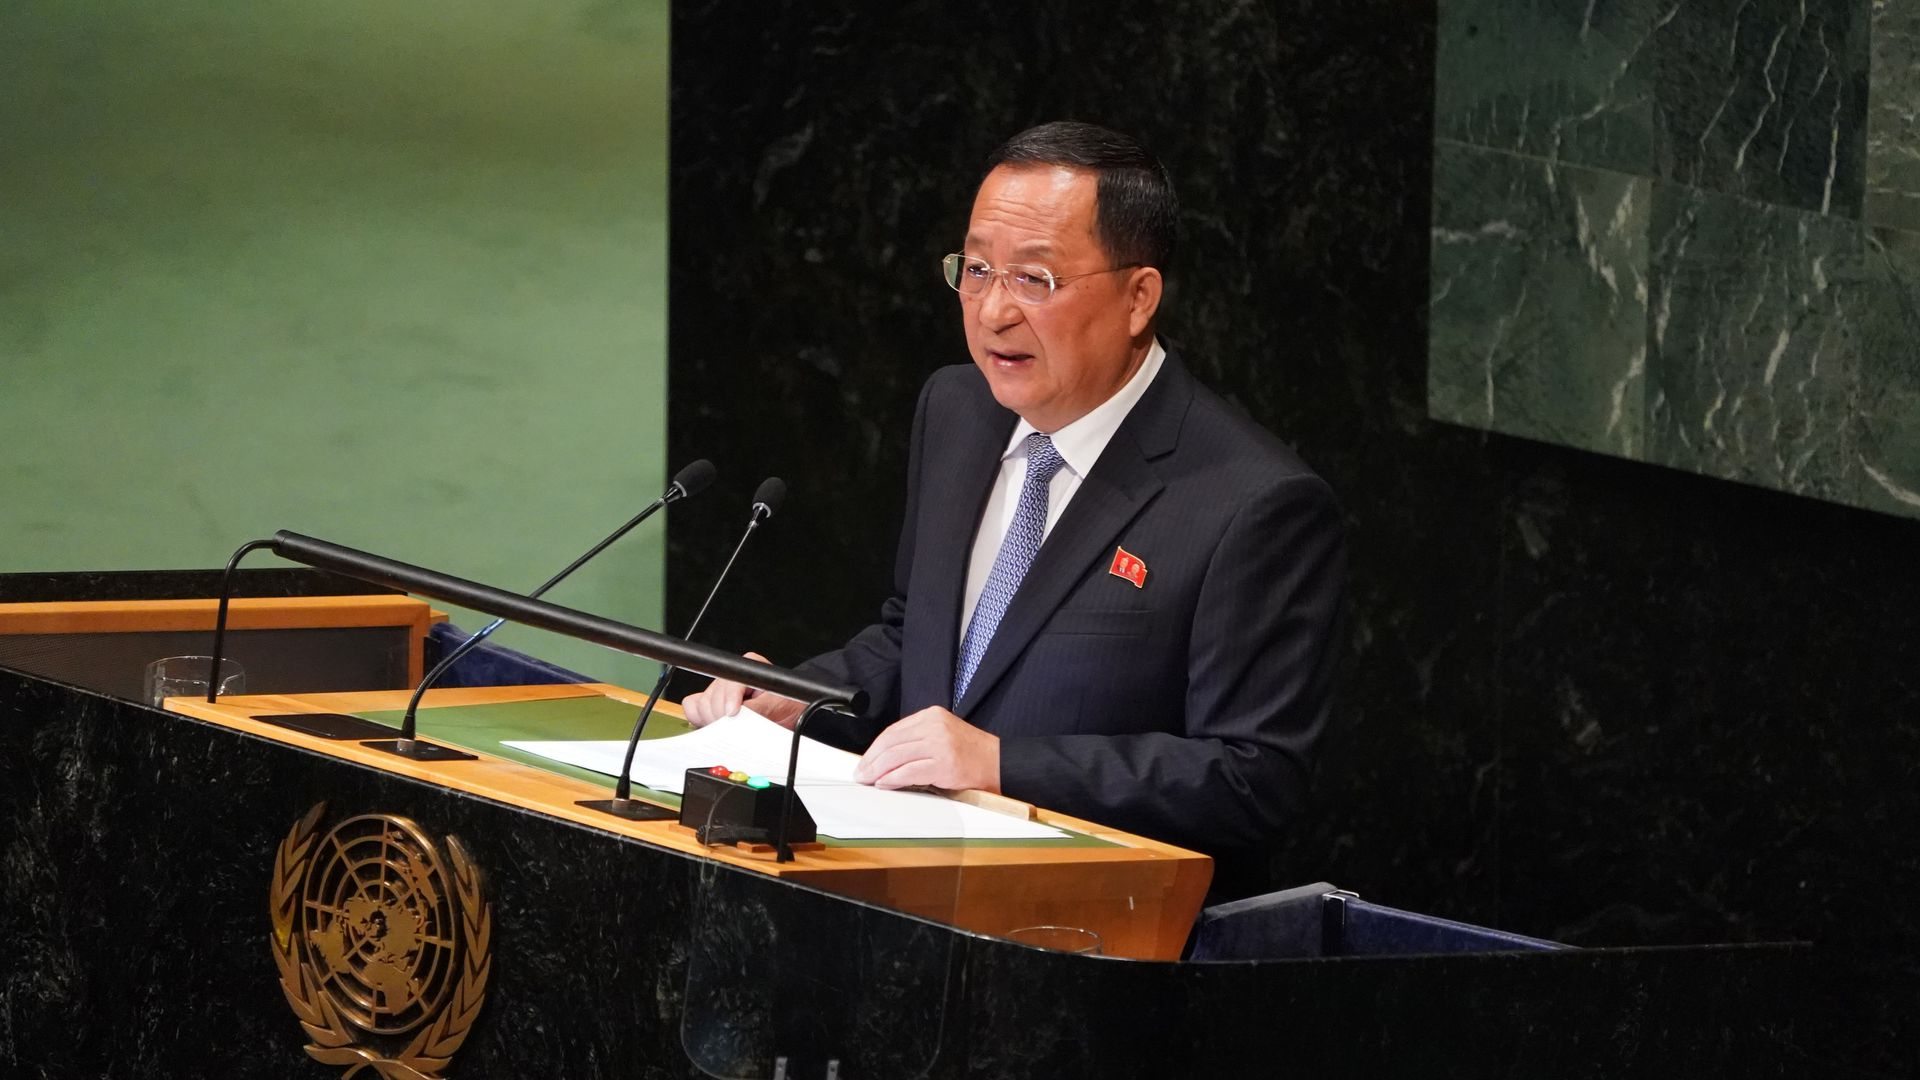 North Korean foreign minister speaking at the UN